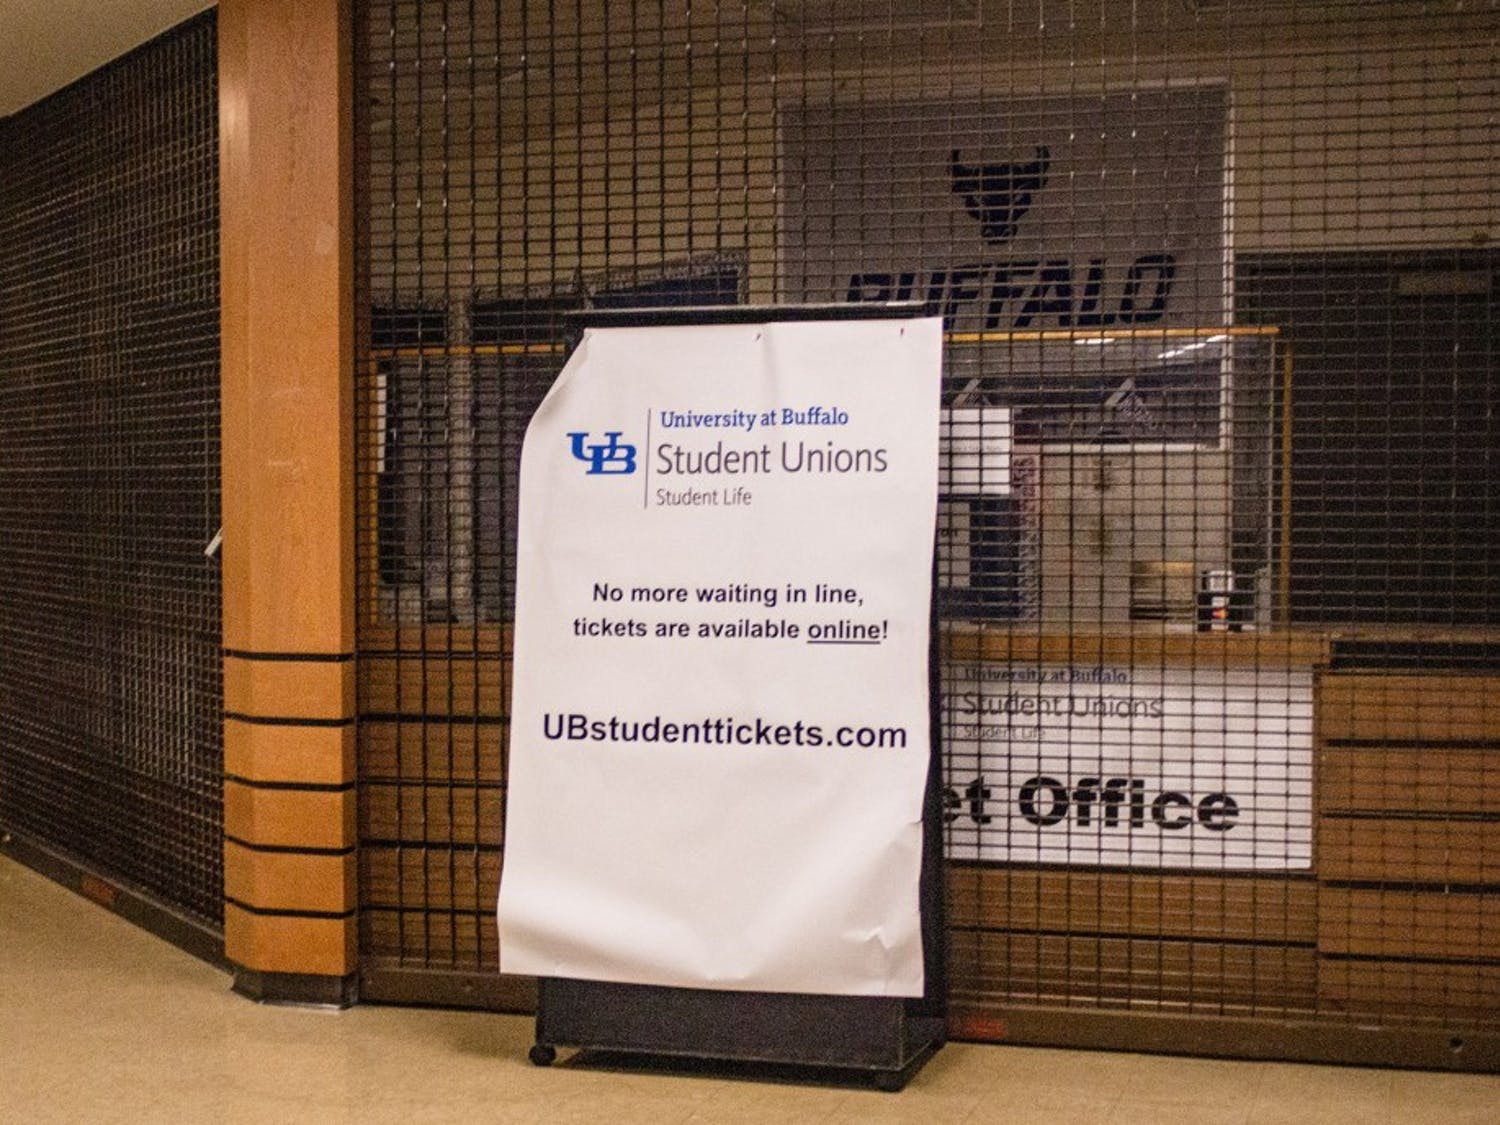 UB Ticket Office at the Student Union.